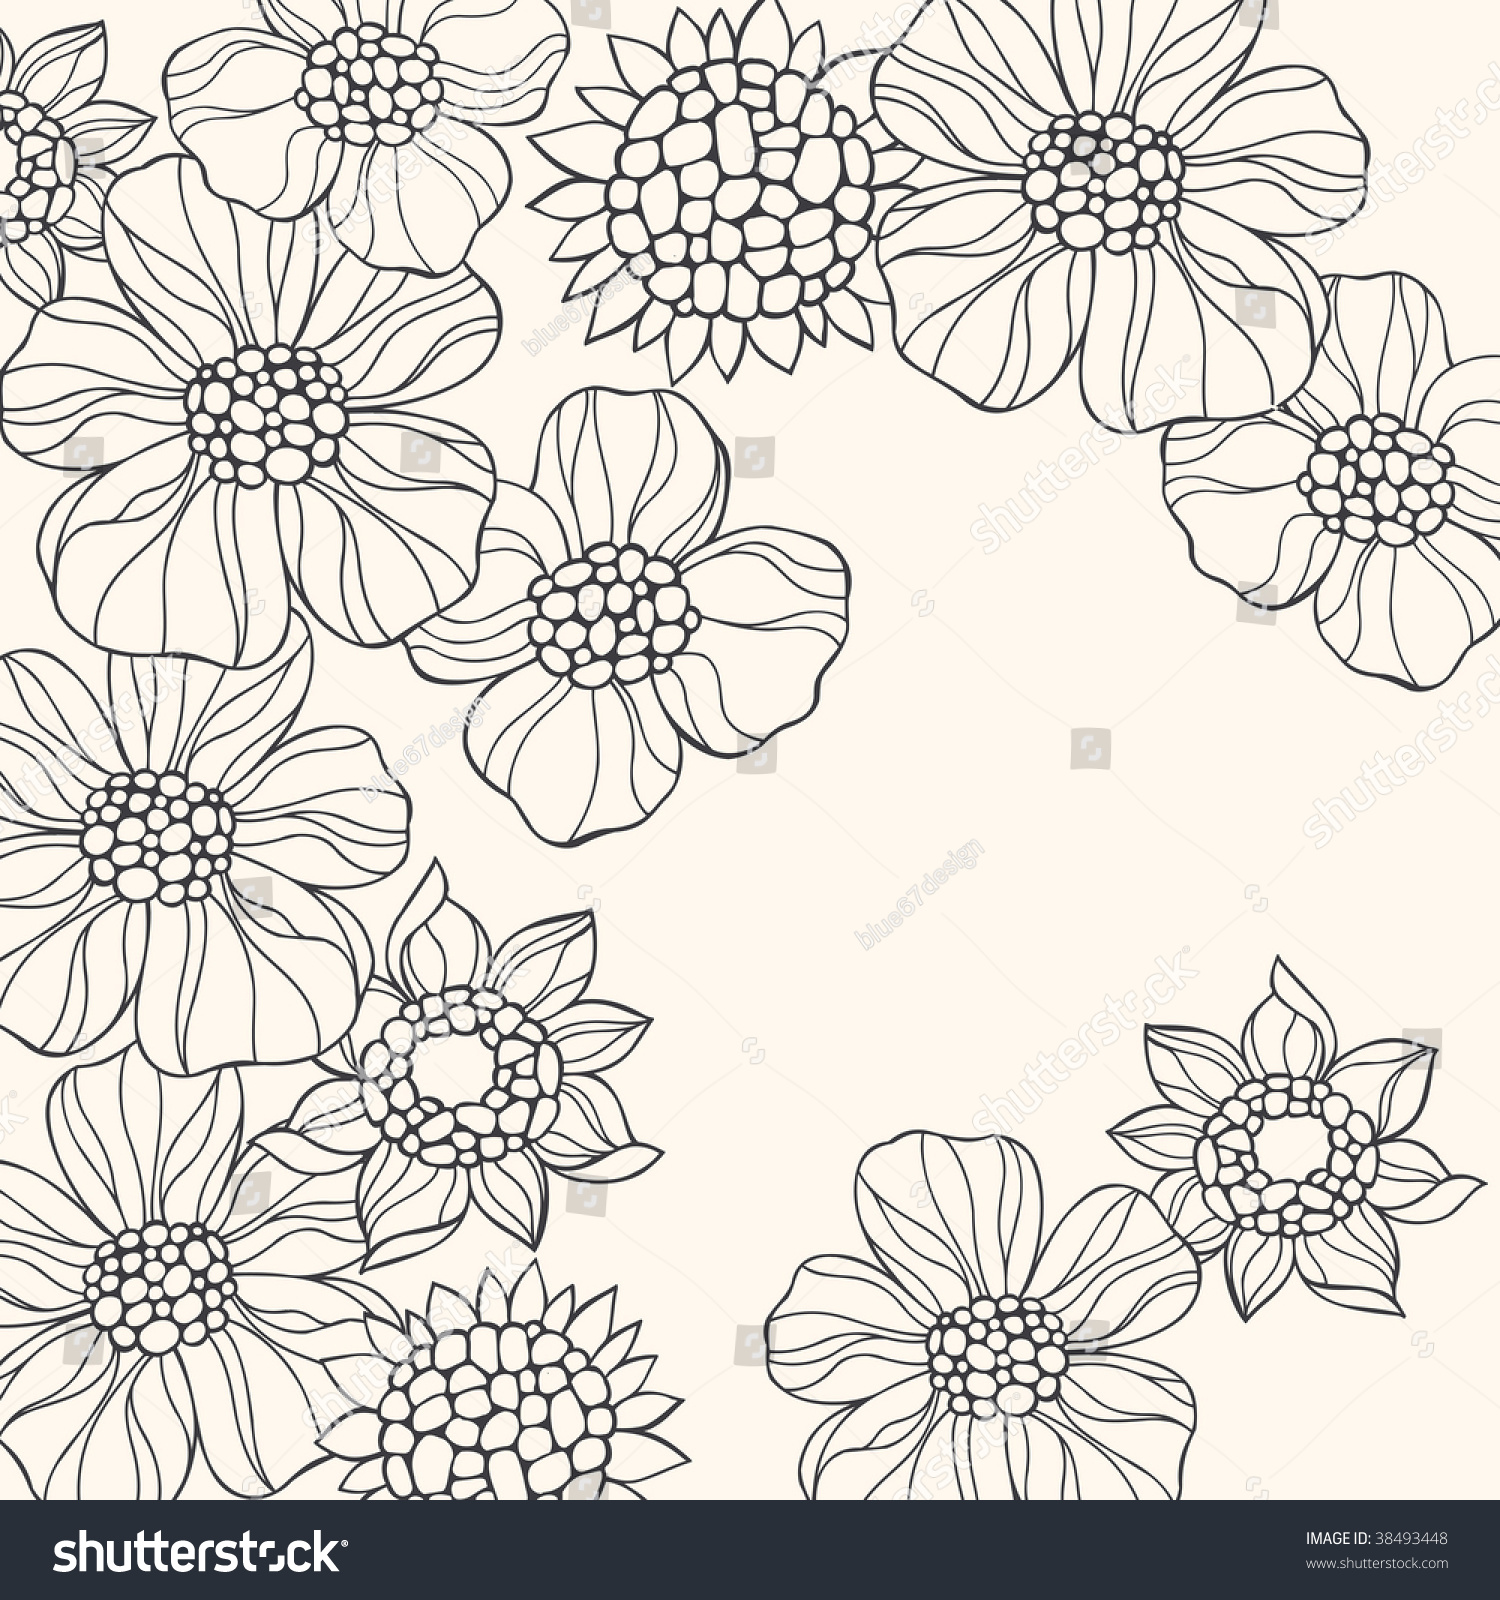 Groovy Flowers Coloring Pages